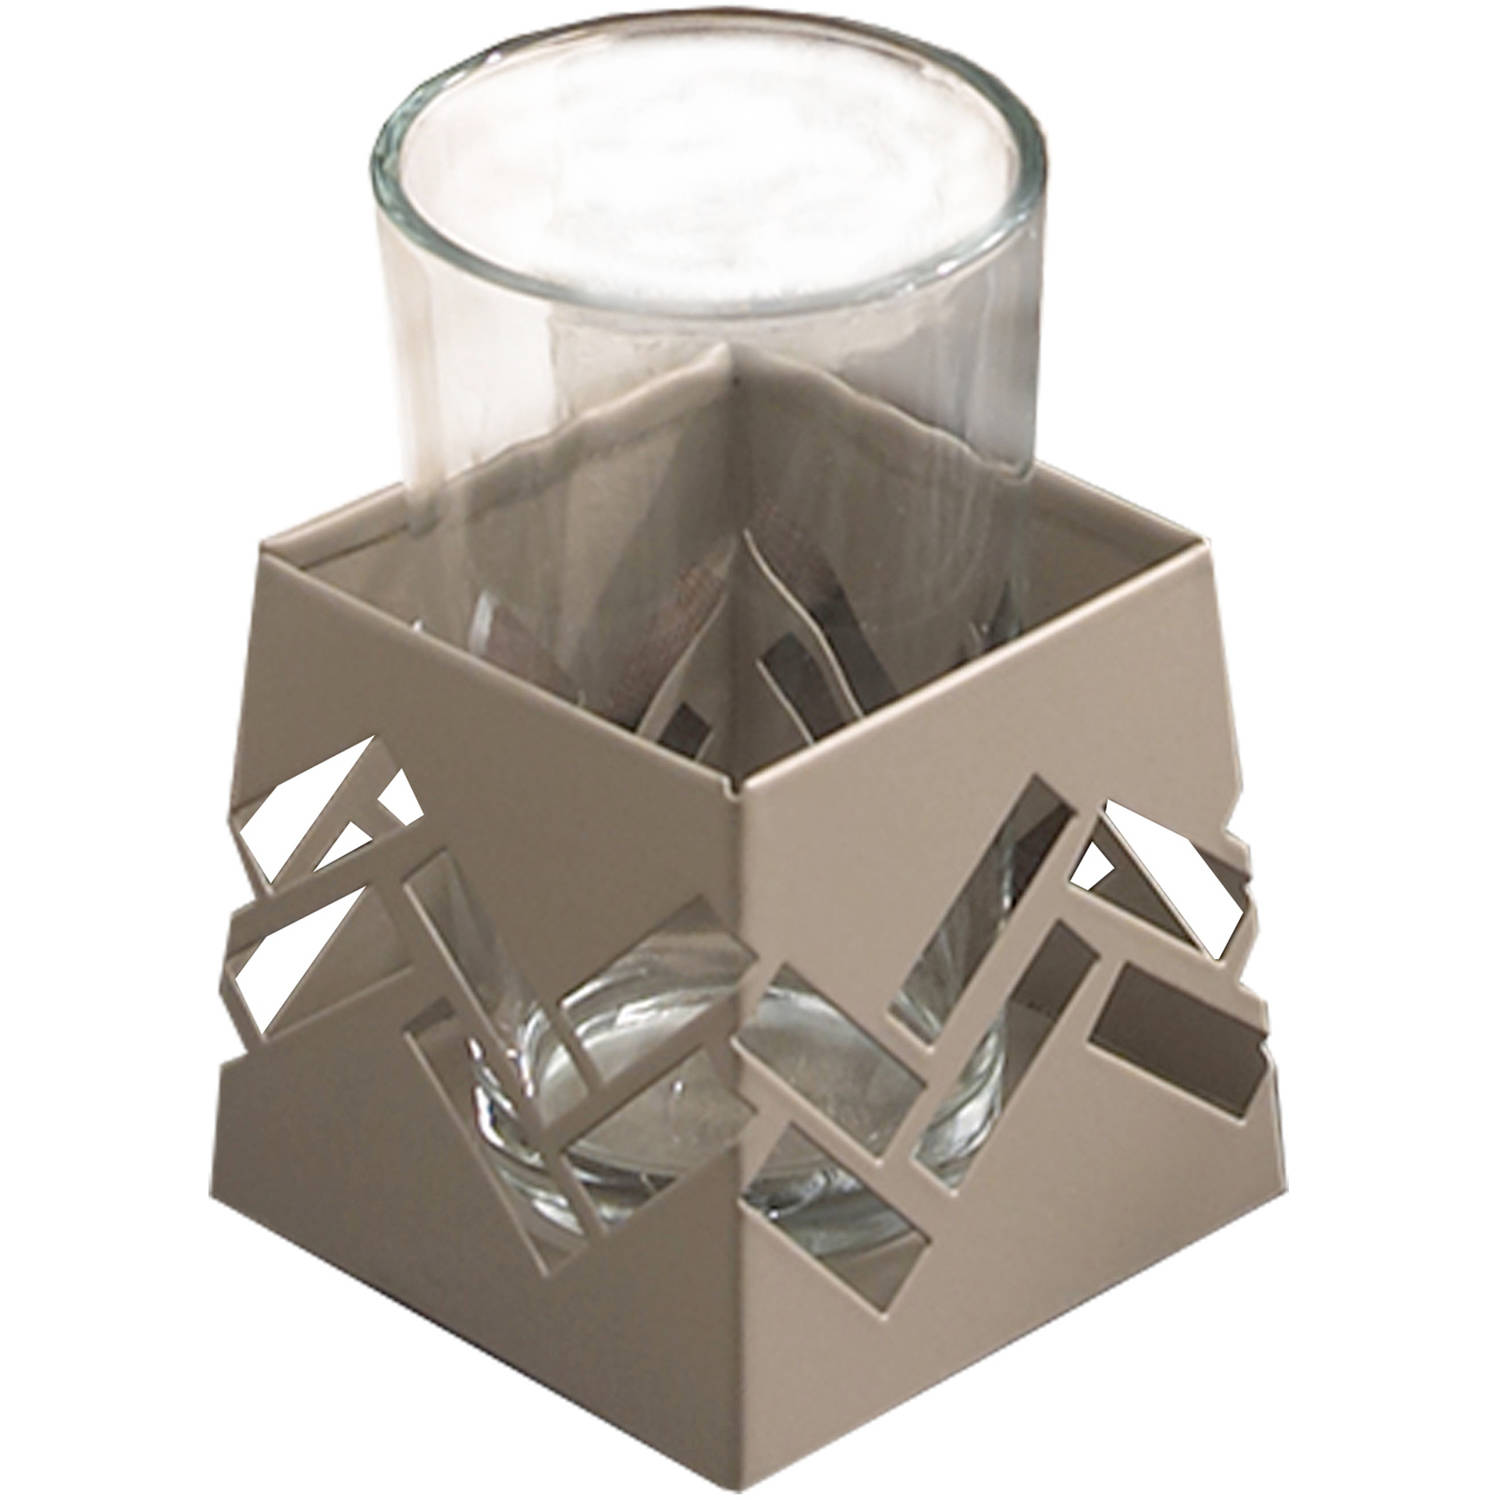 Excell Walkway Tumbler, Taupe